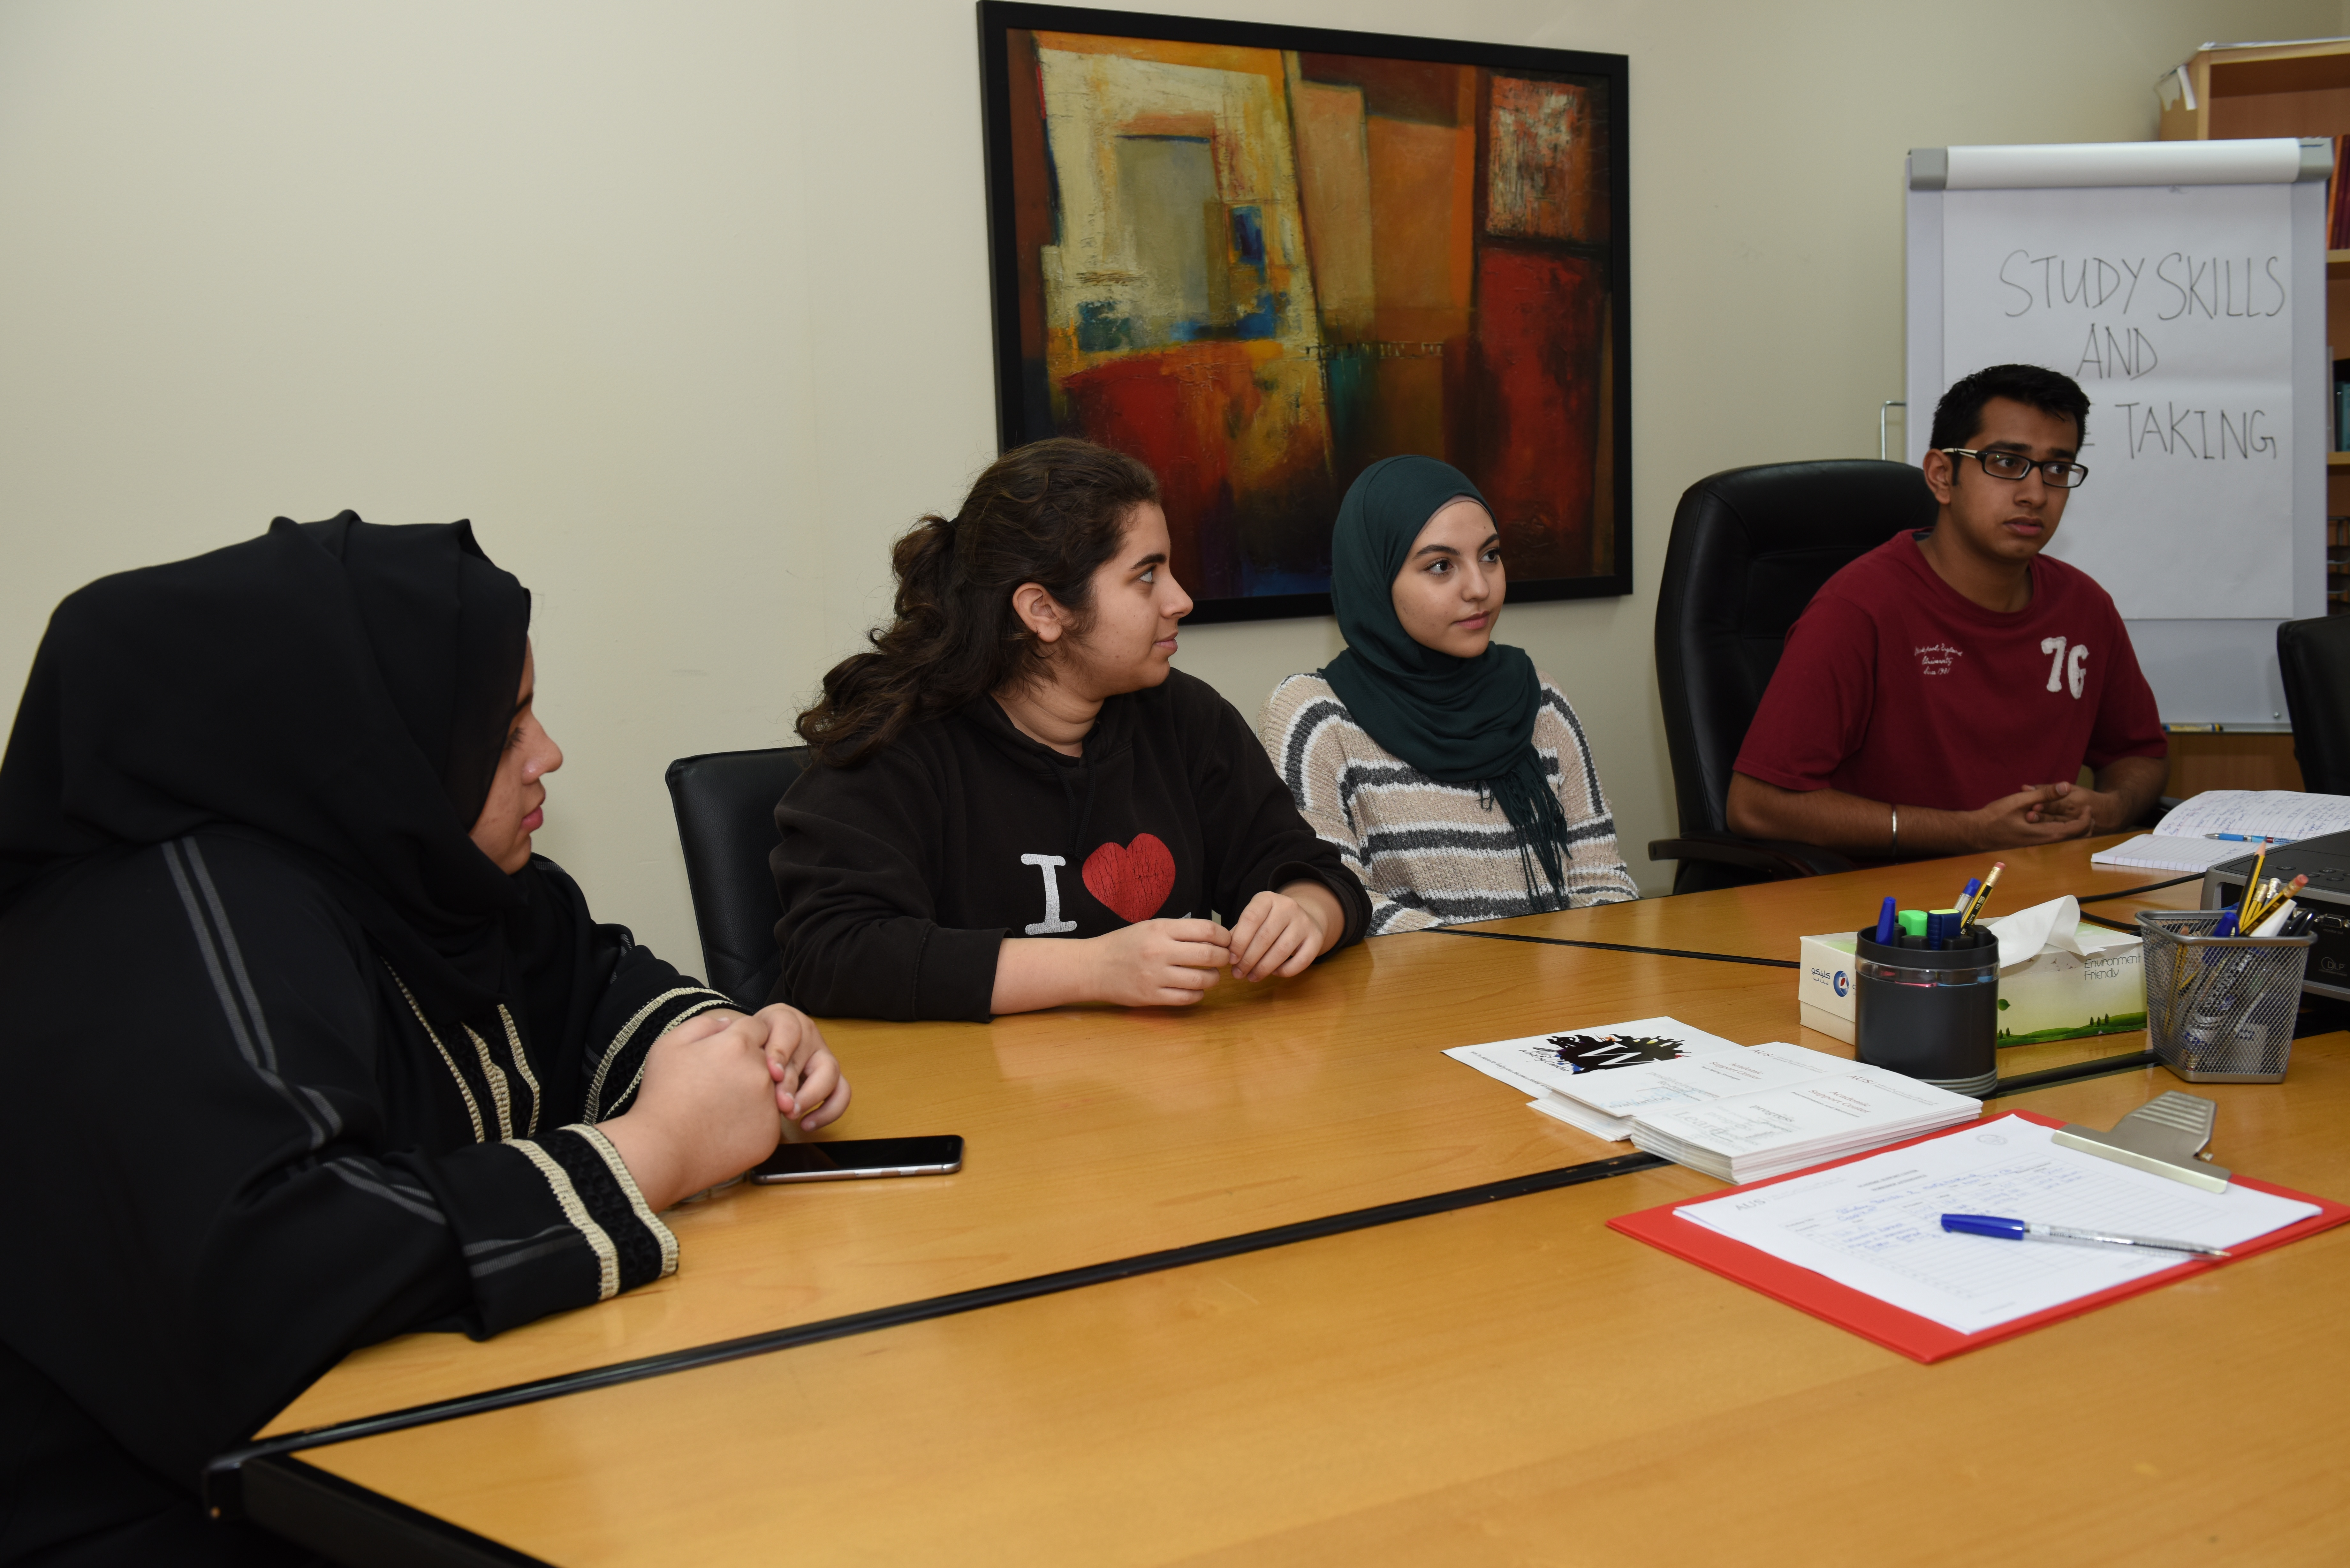 American_University_of_Sharjah_5-1.jpg